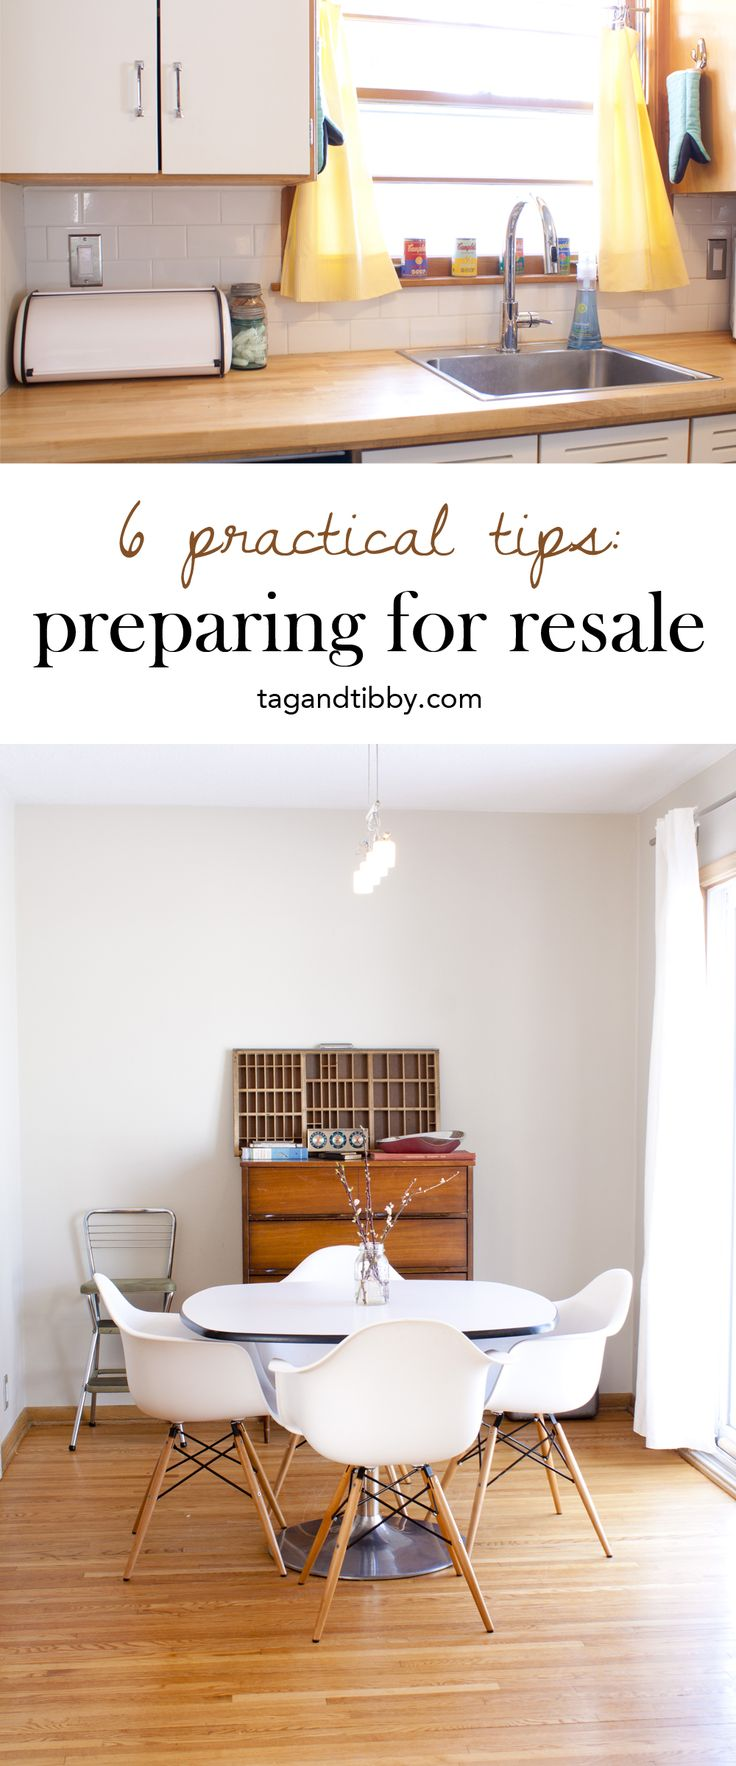 Home decorating diy projects 6 practical tips preparing for resale tag tibby decor - Practical home tips easy solutions ...